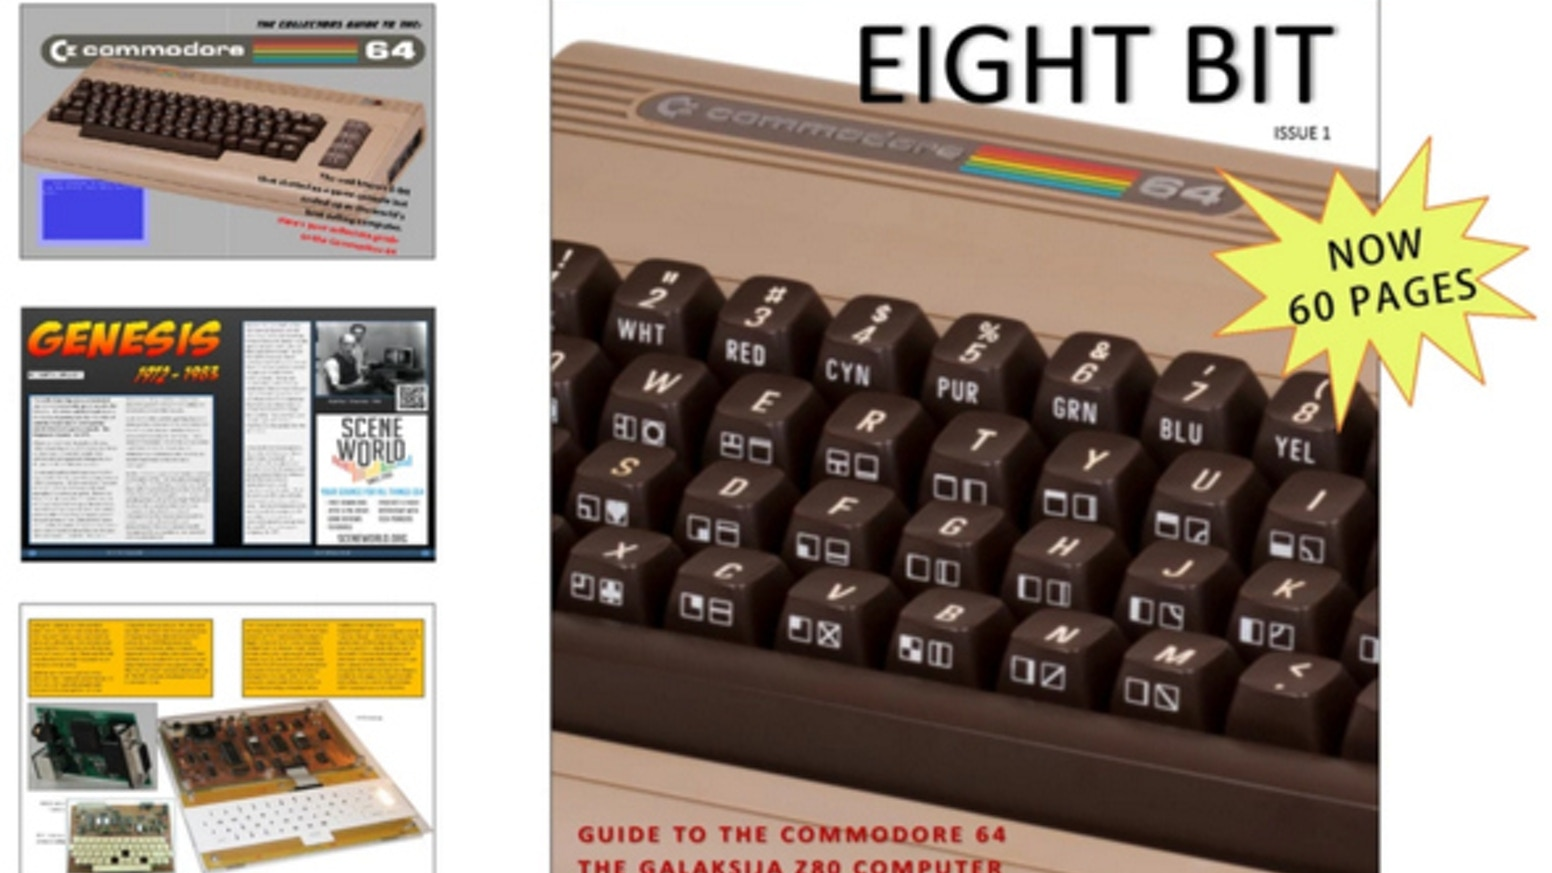 A full colour printed magazine covering all topics regarding eight bit microcomputers from the 70's to the early 90's.